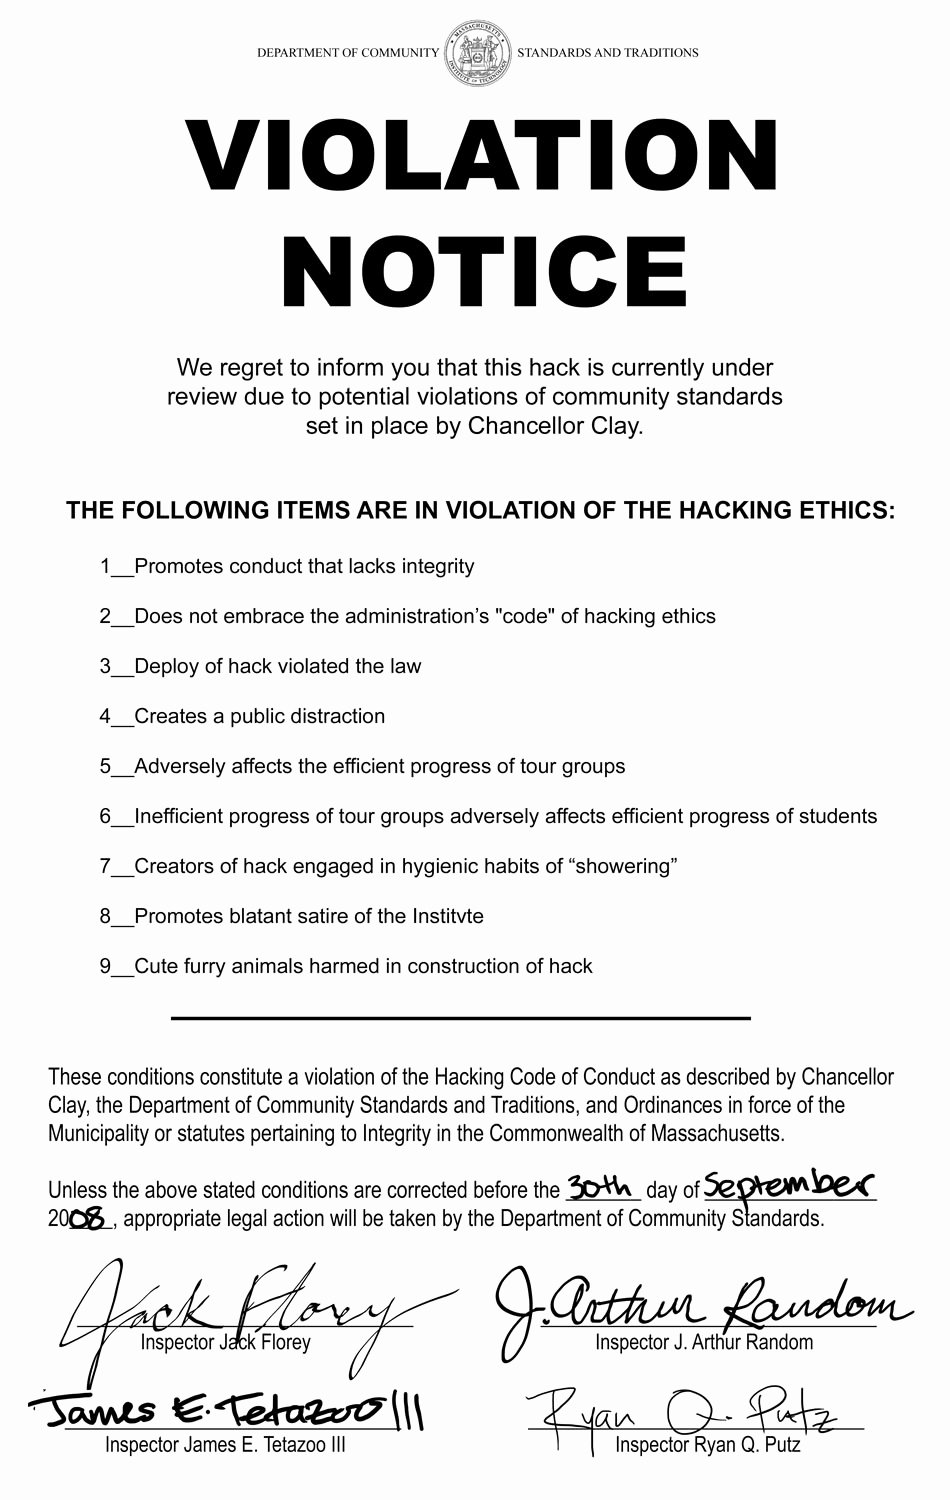 Parking Violation Letter to Tenant Awesome Ihtfp Hack Gallery Violation Notices On Hacks